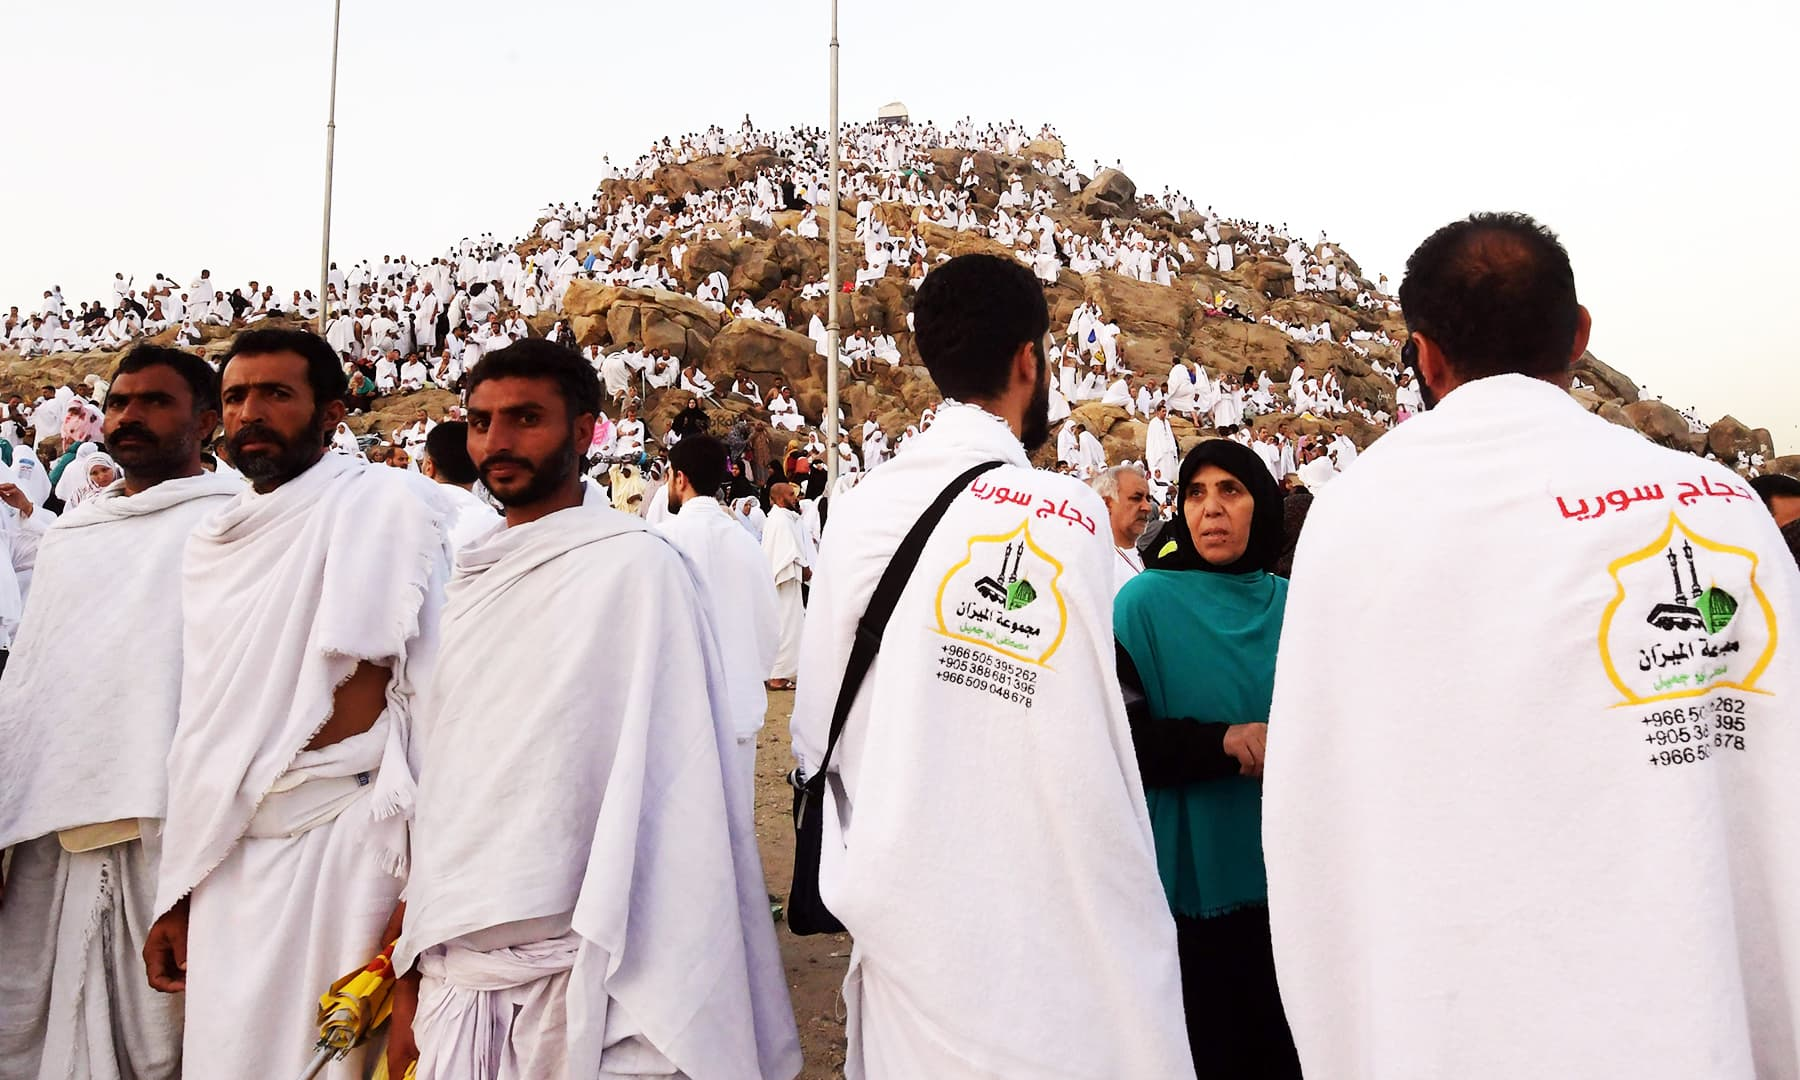 Syrian pilgrims gather at Mount Arafat, also known as Jabal al-Rahma. — AFP